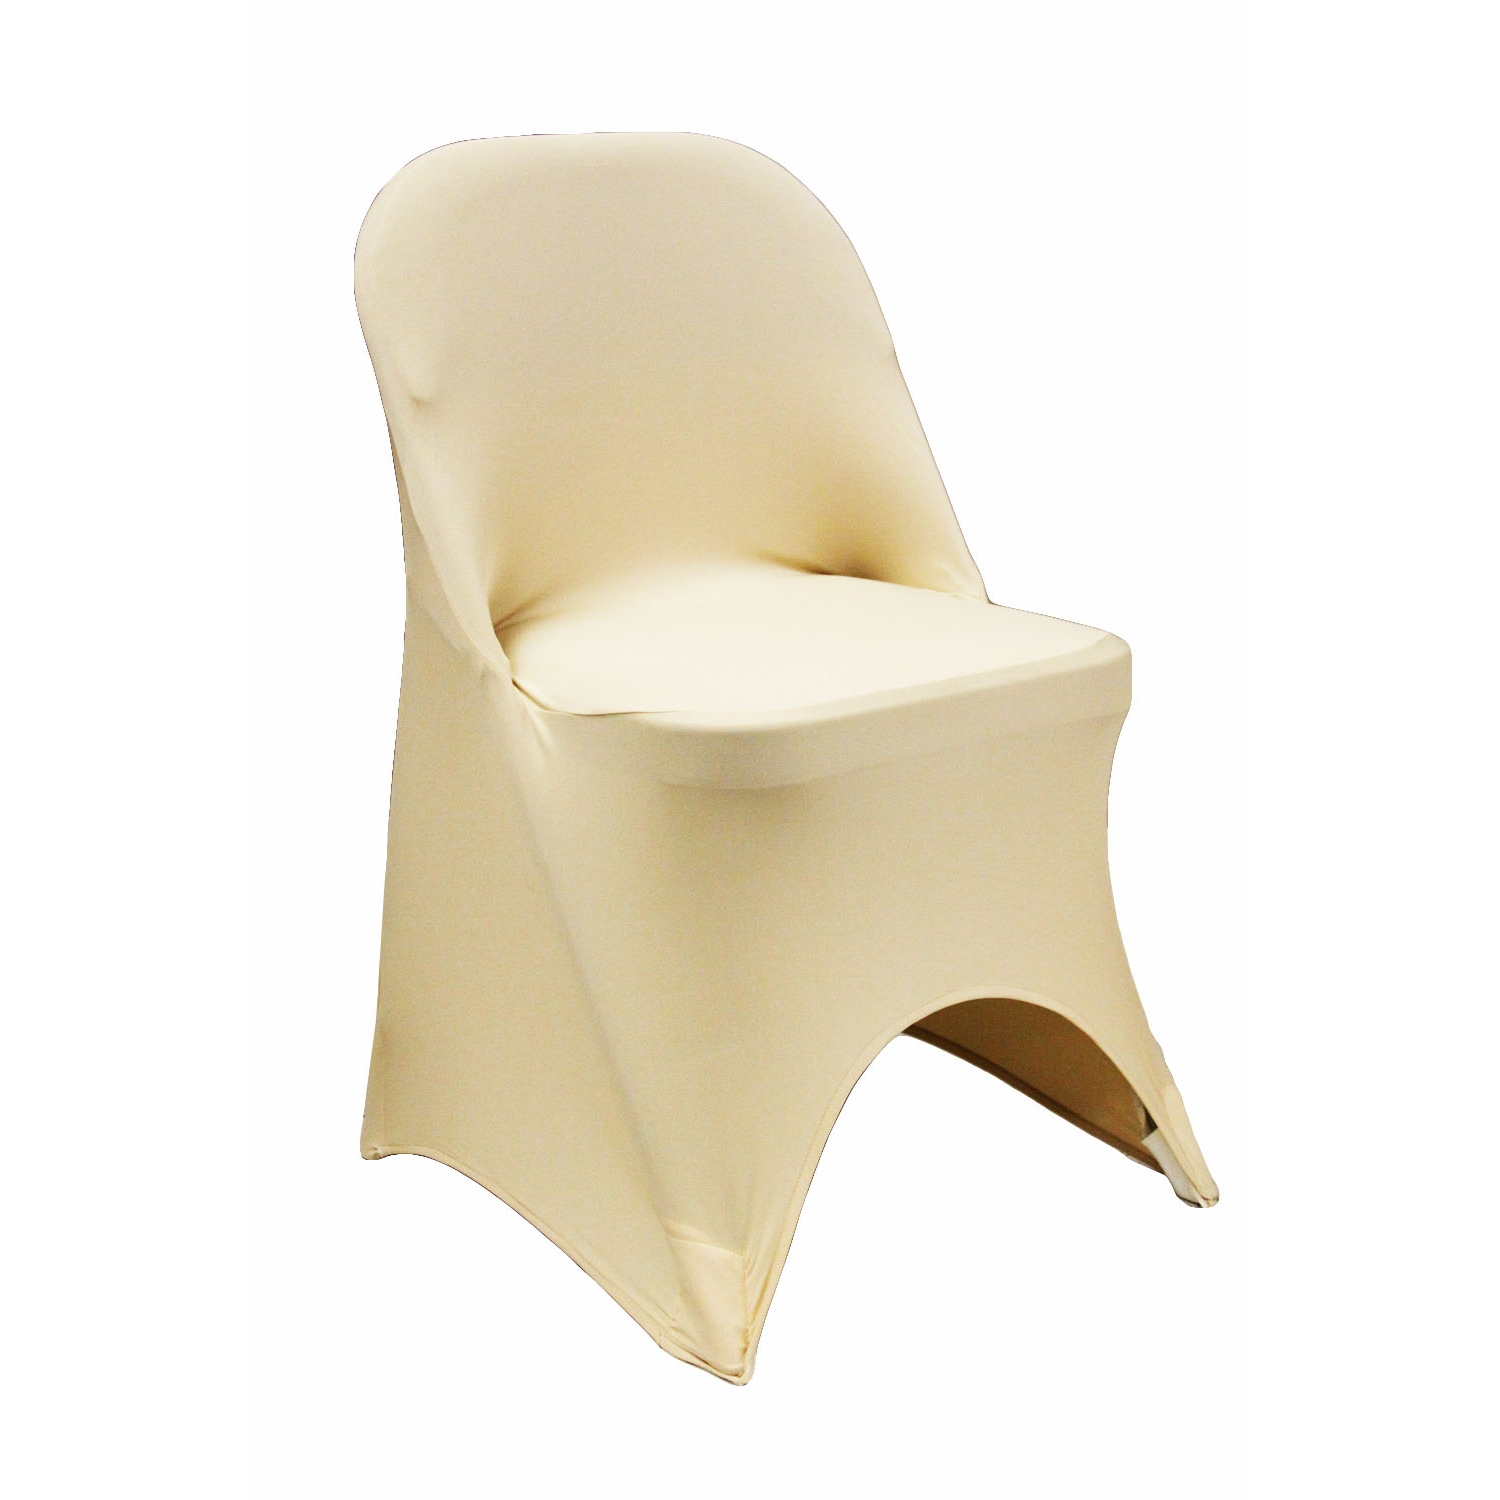 Champagne Chair Covers Folding Spandex Chair Cover Champagne Deal Of The Week Ends 02 15